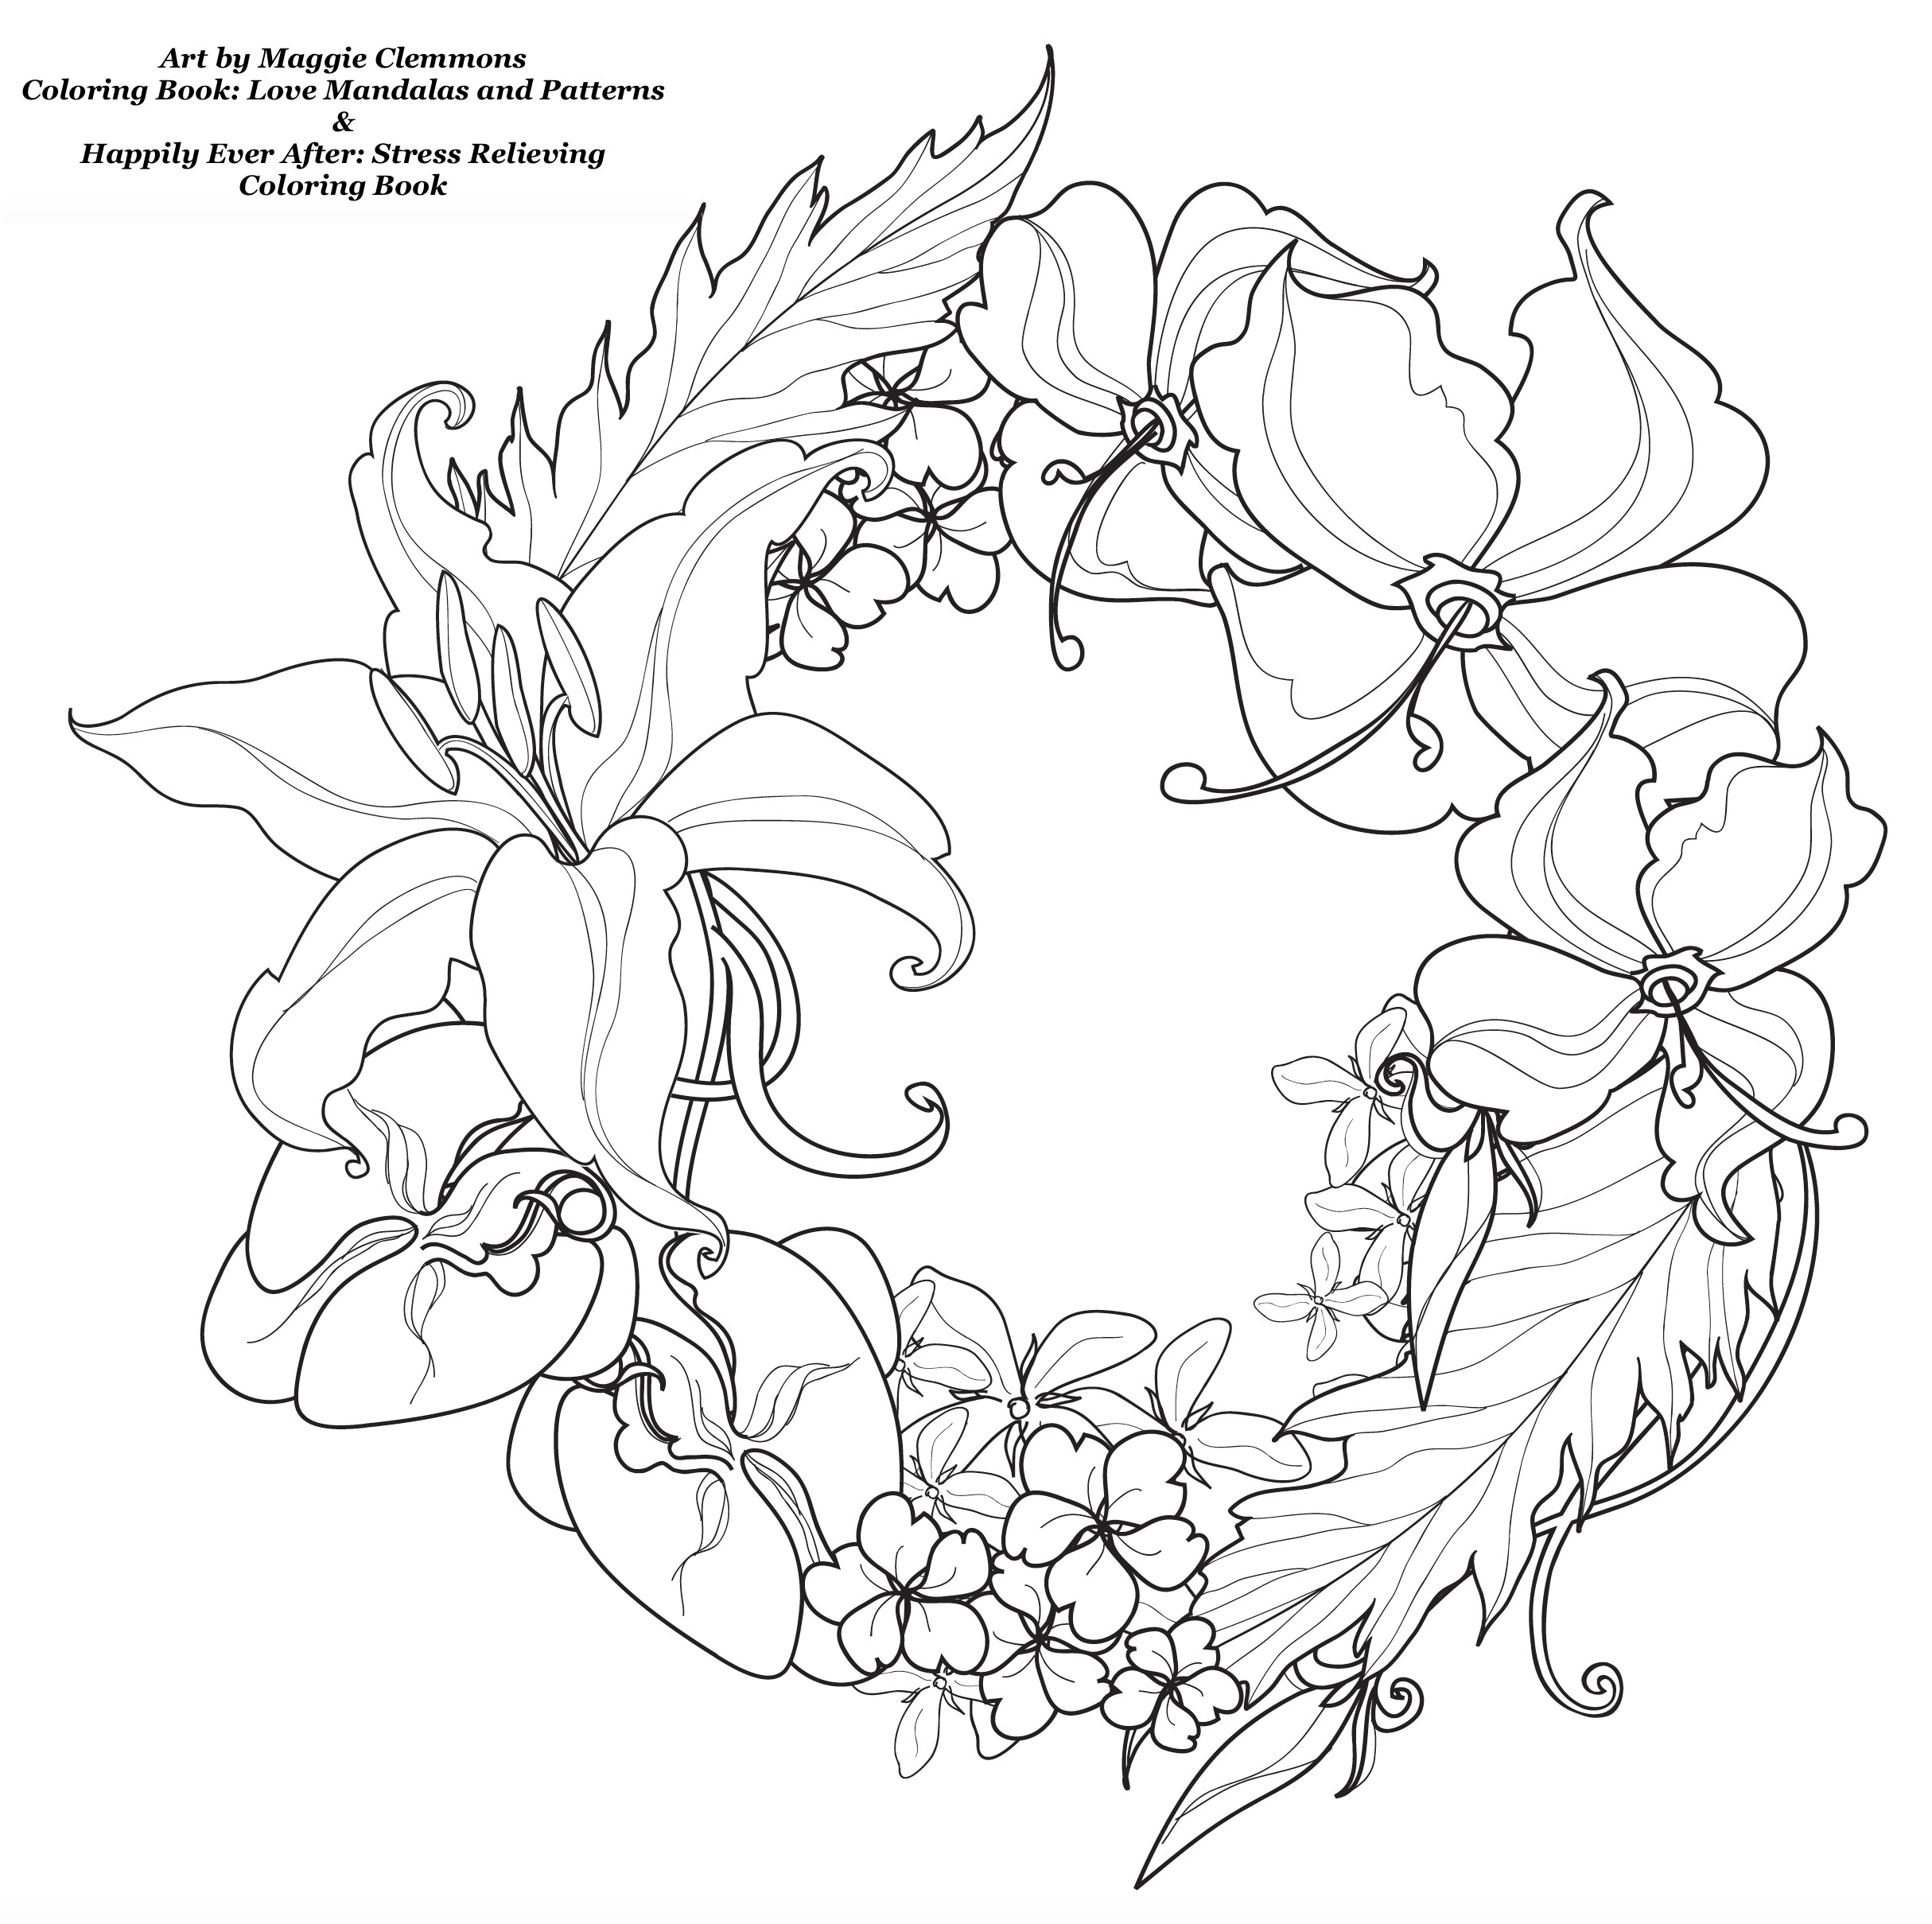 Free Printable I Love You Coloring Pages For Adults  Love Coloring Pages For Adults Full Naked Bo s